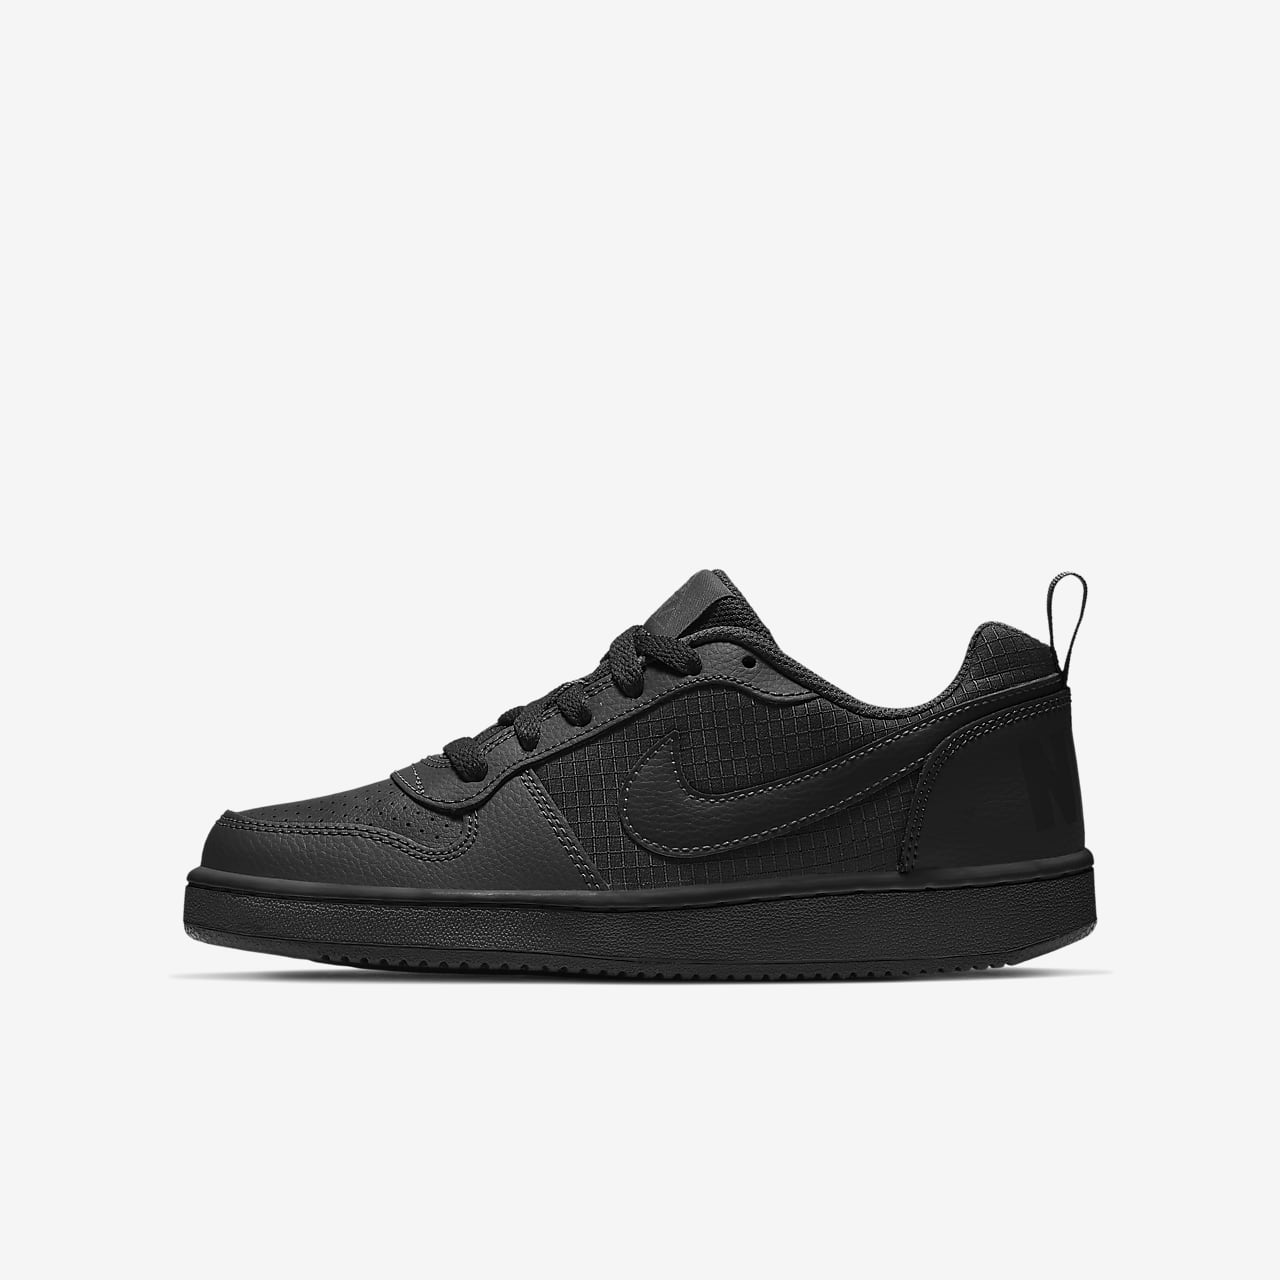 Kinder Borough Für Low Nike Schuh Court Ältere NPwknO8X0